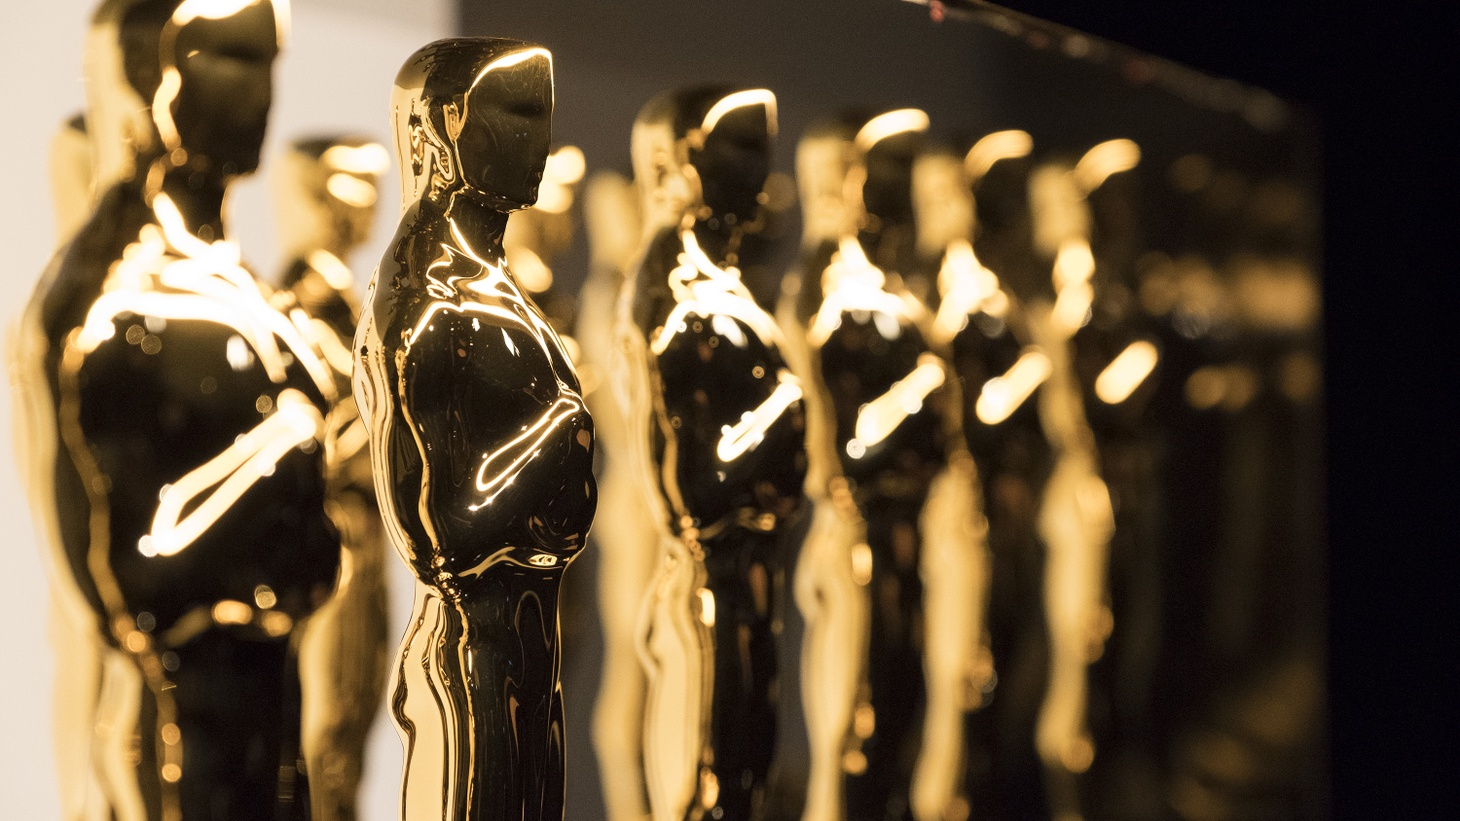 The Academy has pushed the next Oscars ceremony to April 2021.